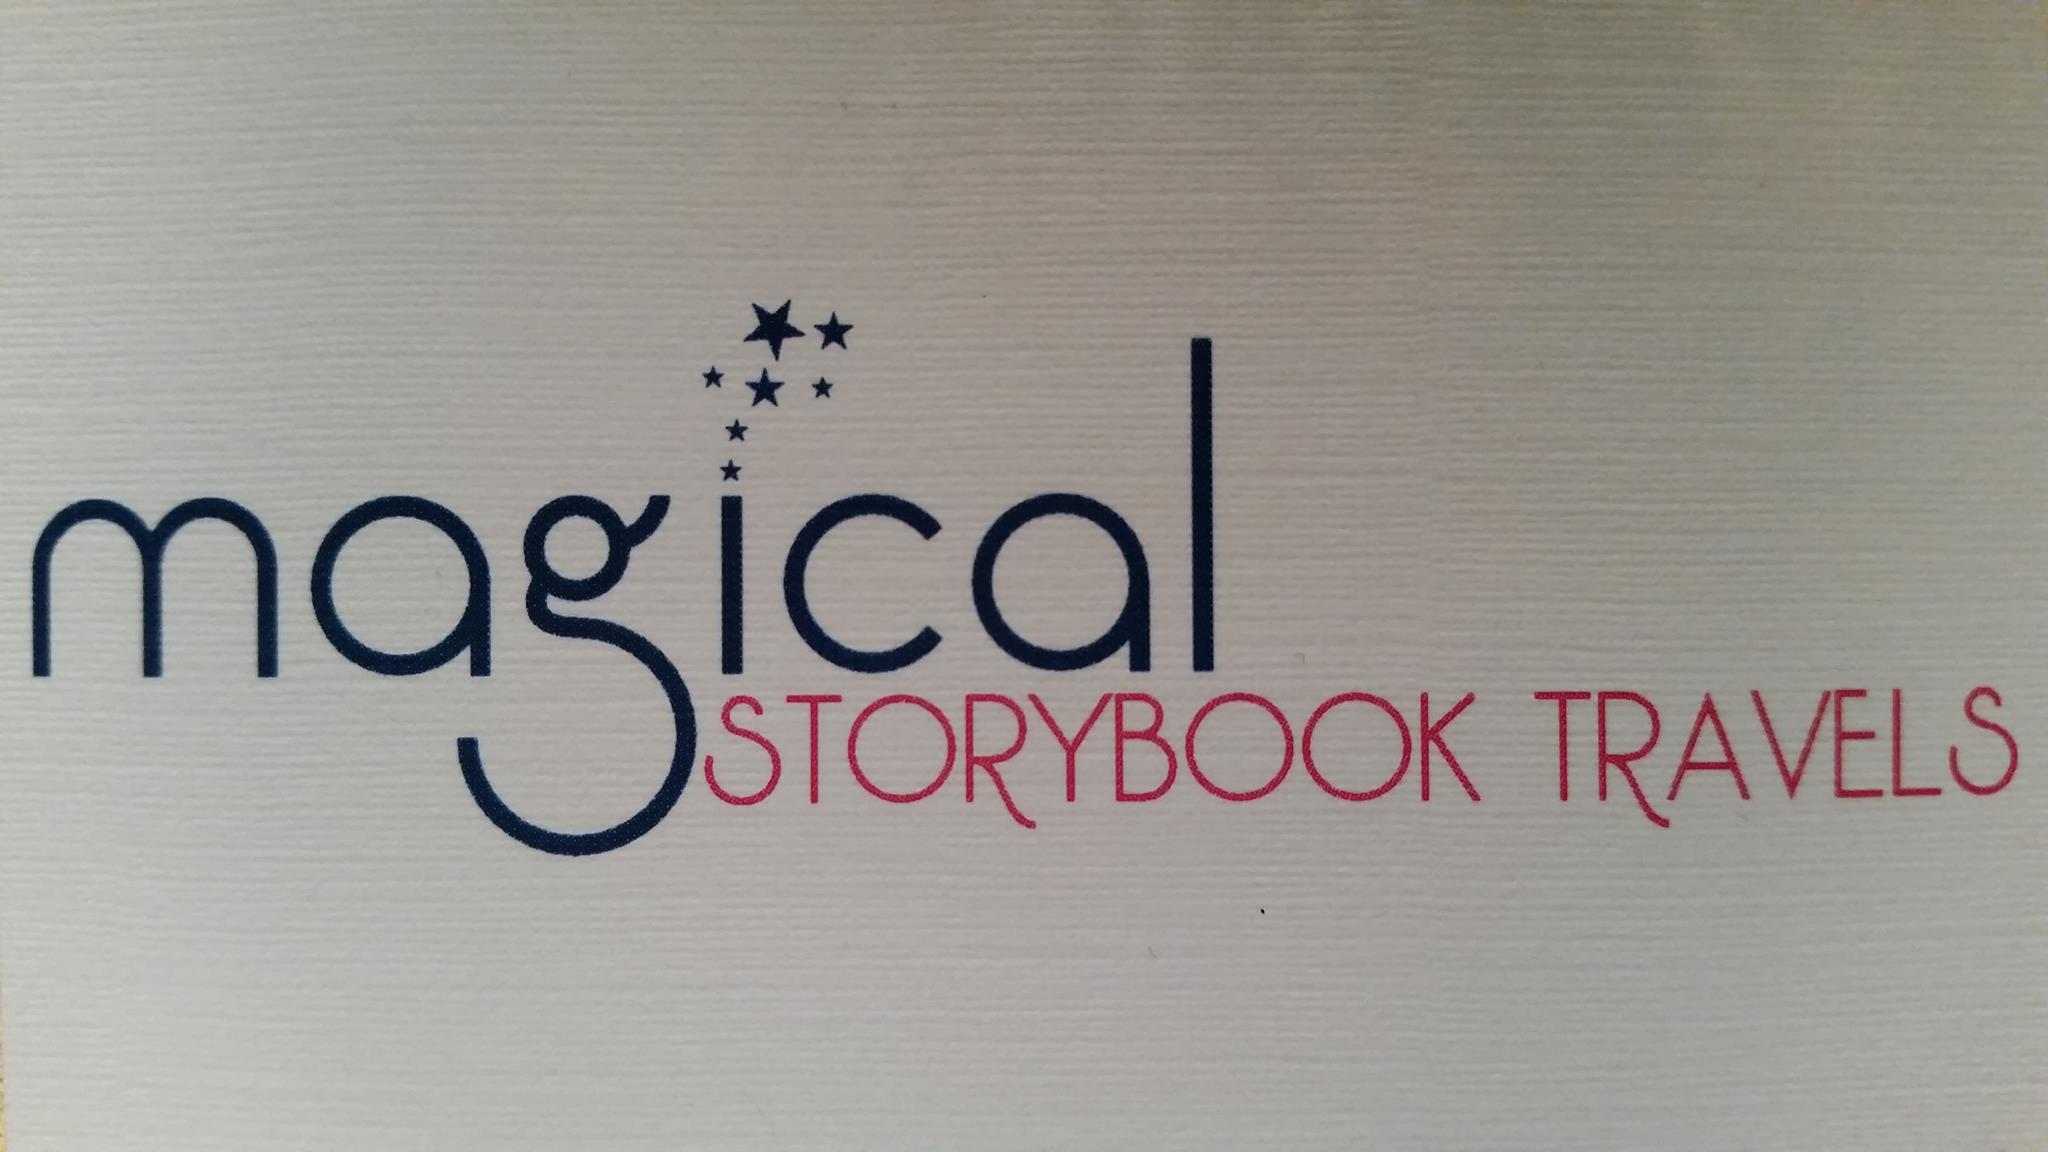 MAGICAL STORYBOOK TRAVELS LOGO FOR FOX.jpg